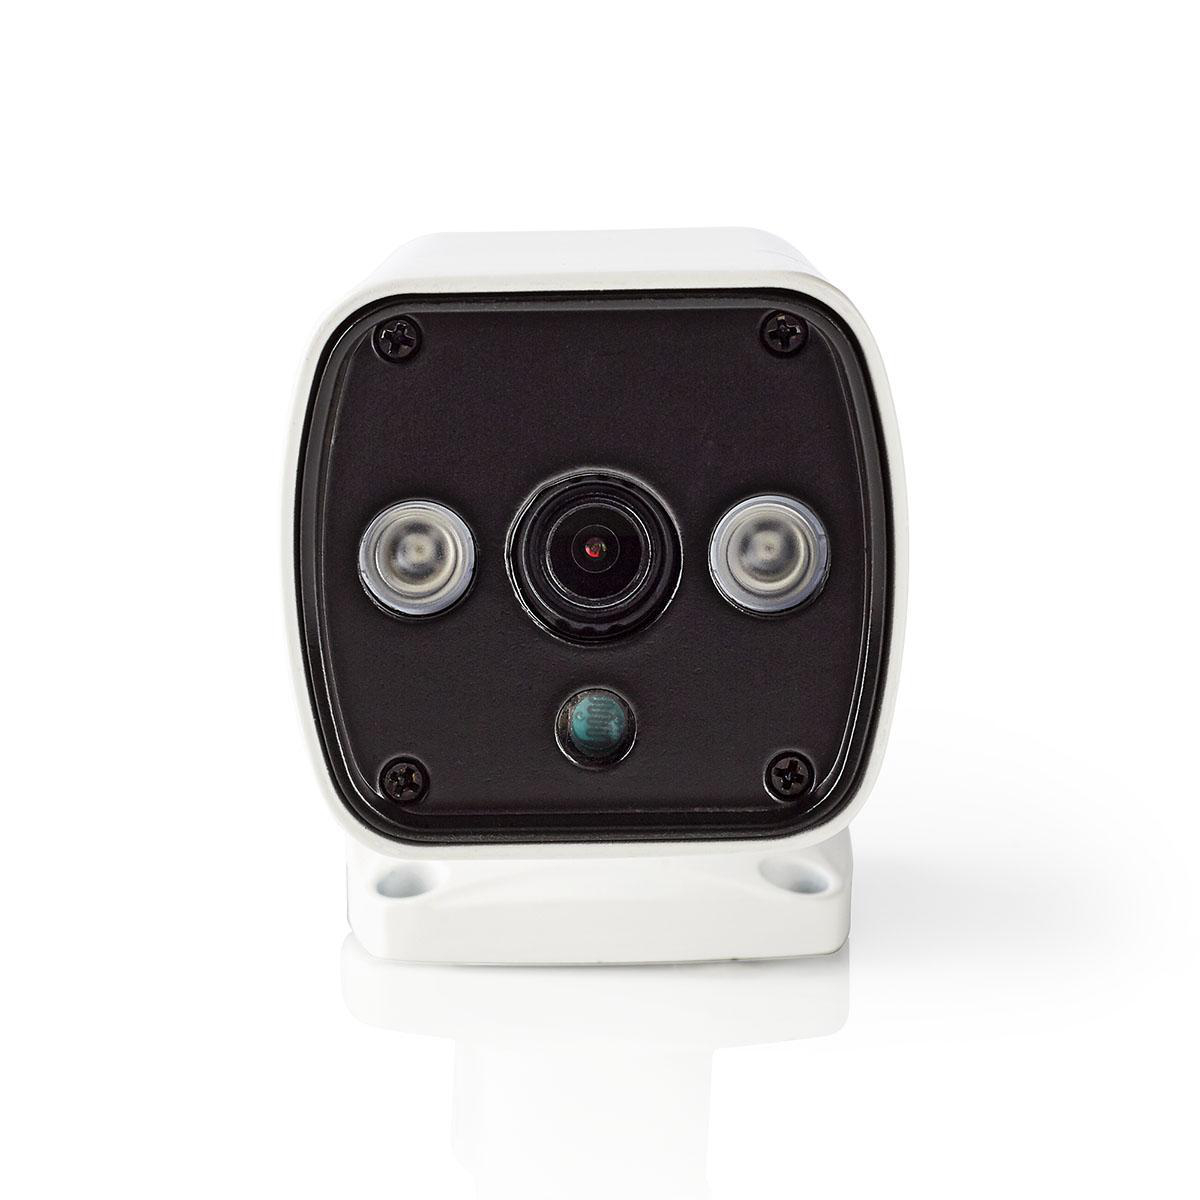 CCTV Security Camera | Bullet | HD | For use with analogue